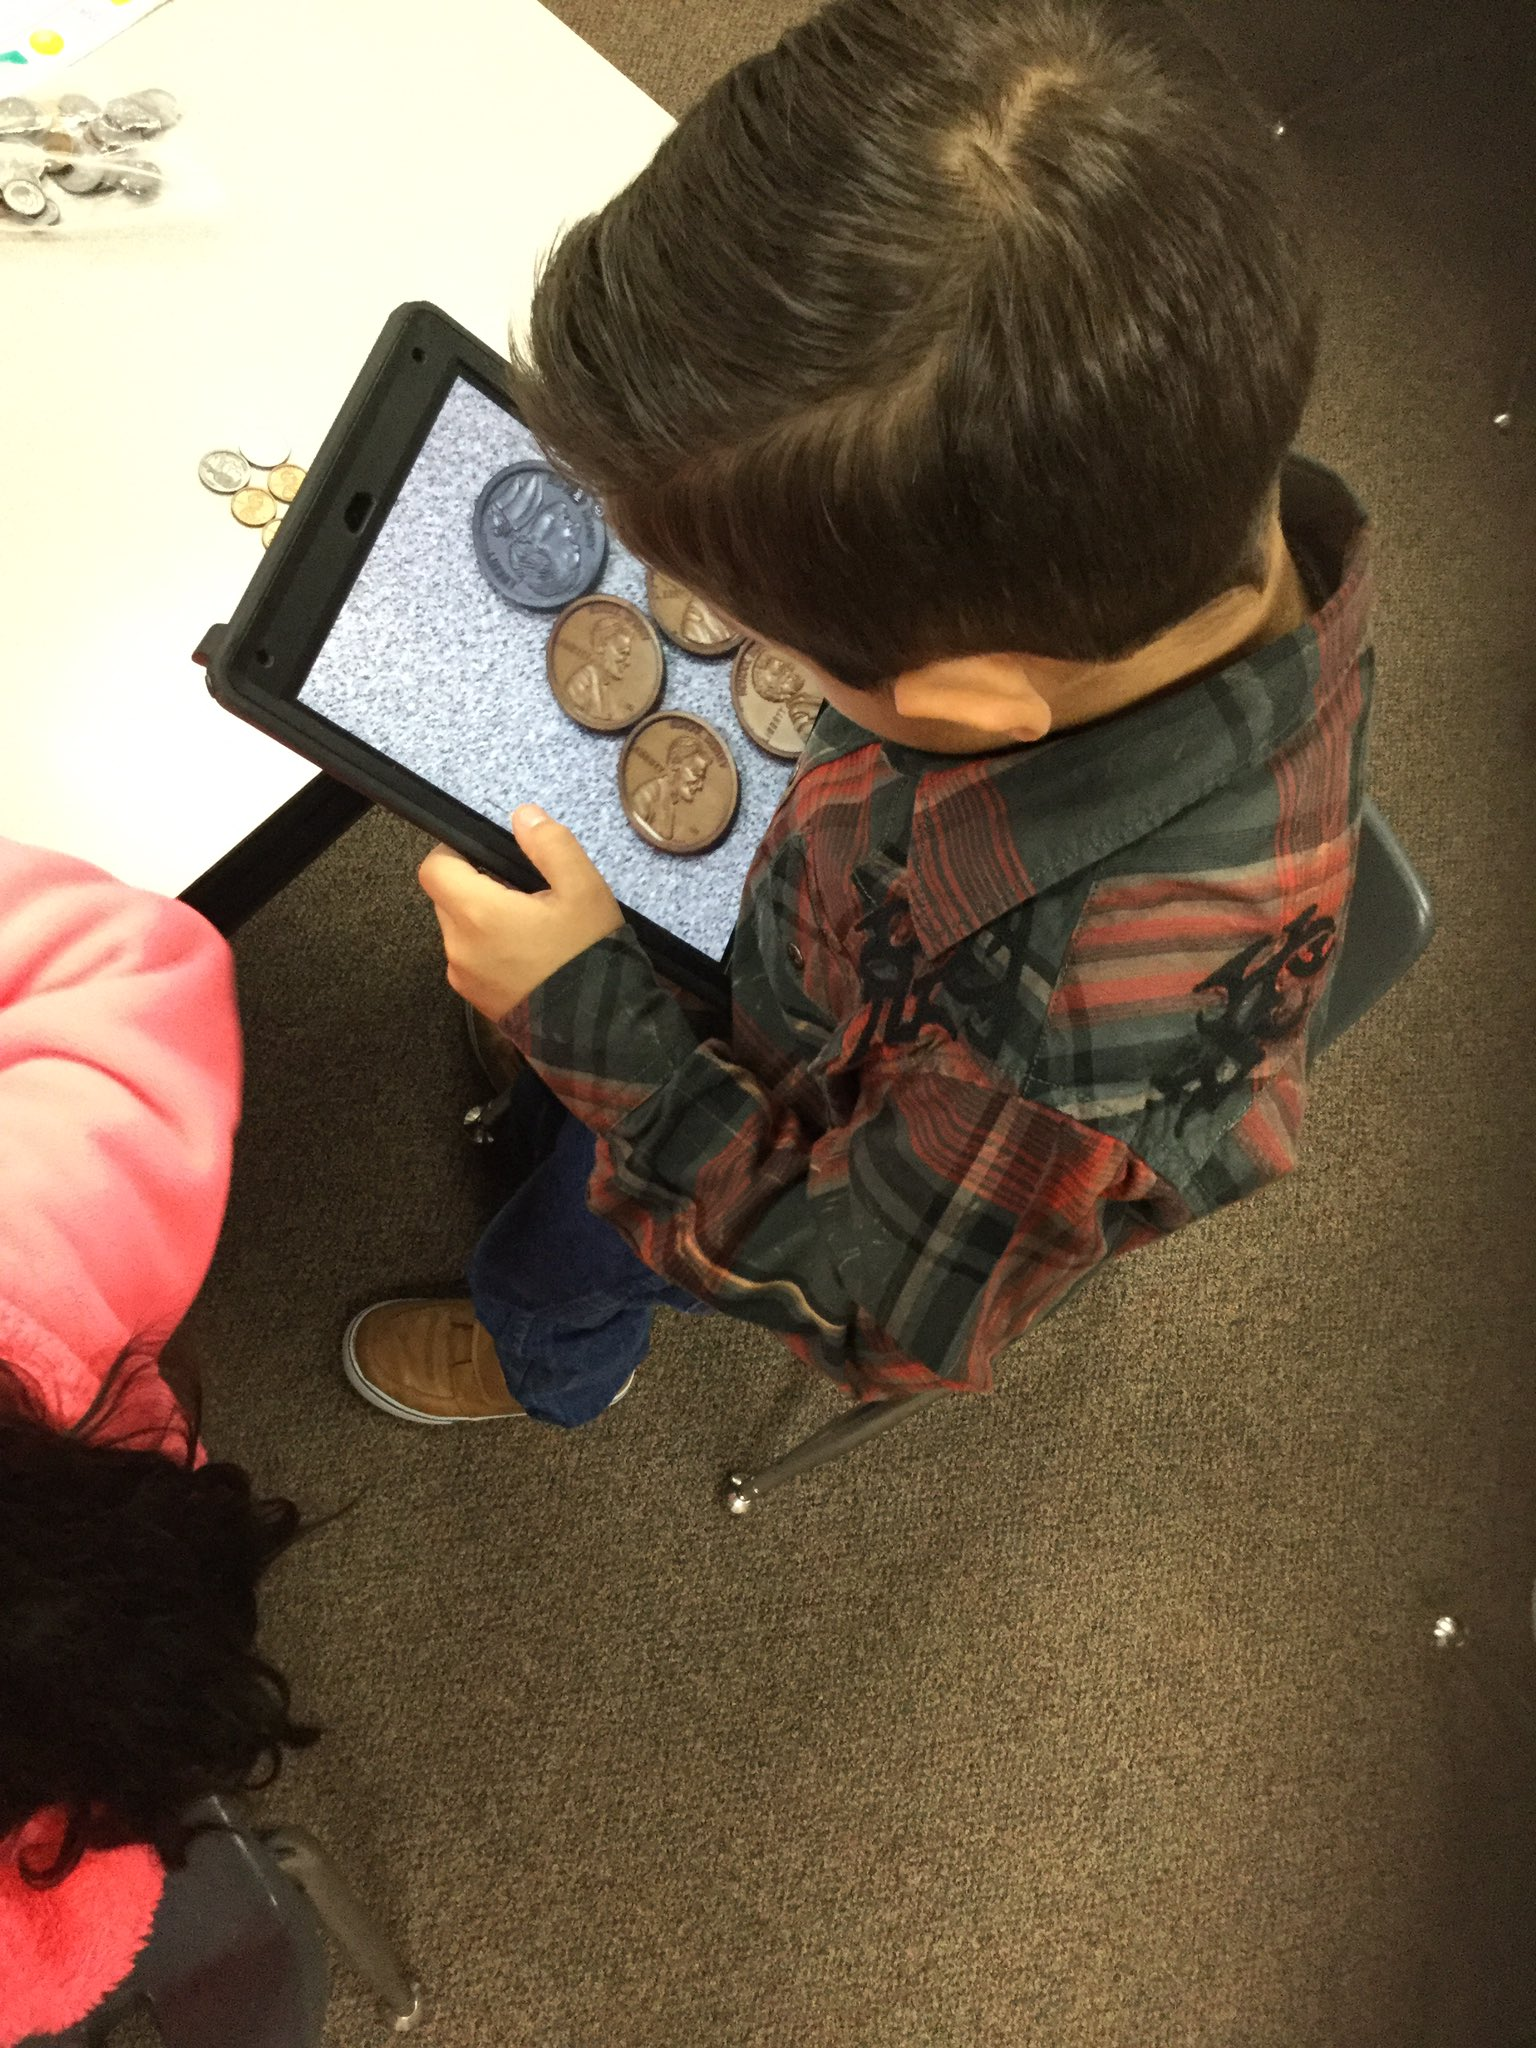 #TravisTigers 1st use coins and @ChatterPixIt to explain how much money they will use when they go shopping. @DianaTruesdale @gccisd_edtech https://t.co/jmtk4Qncfj